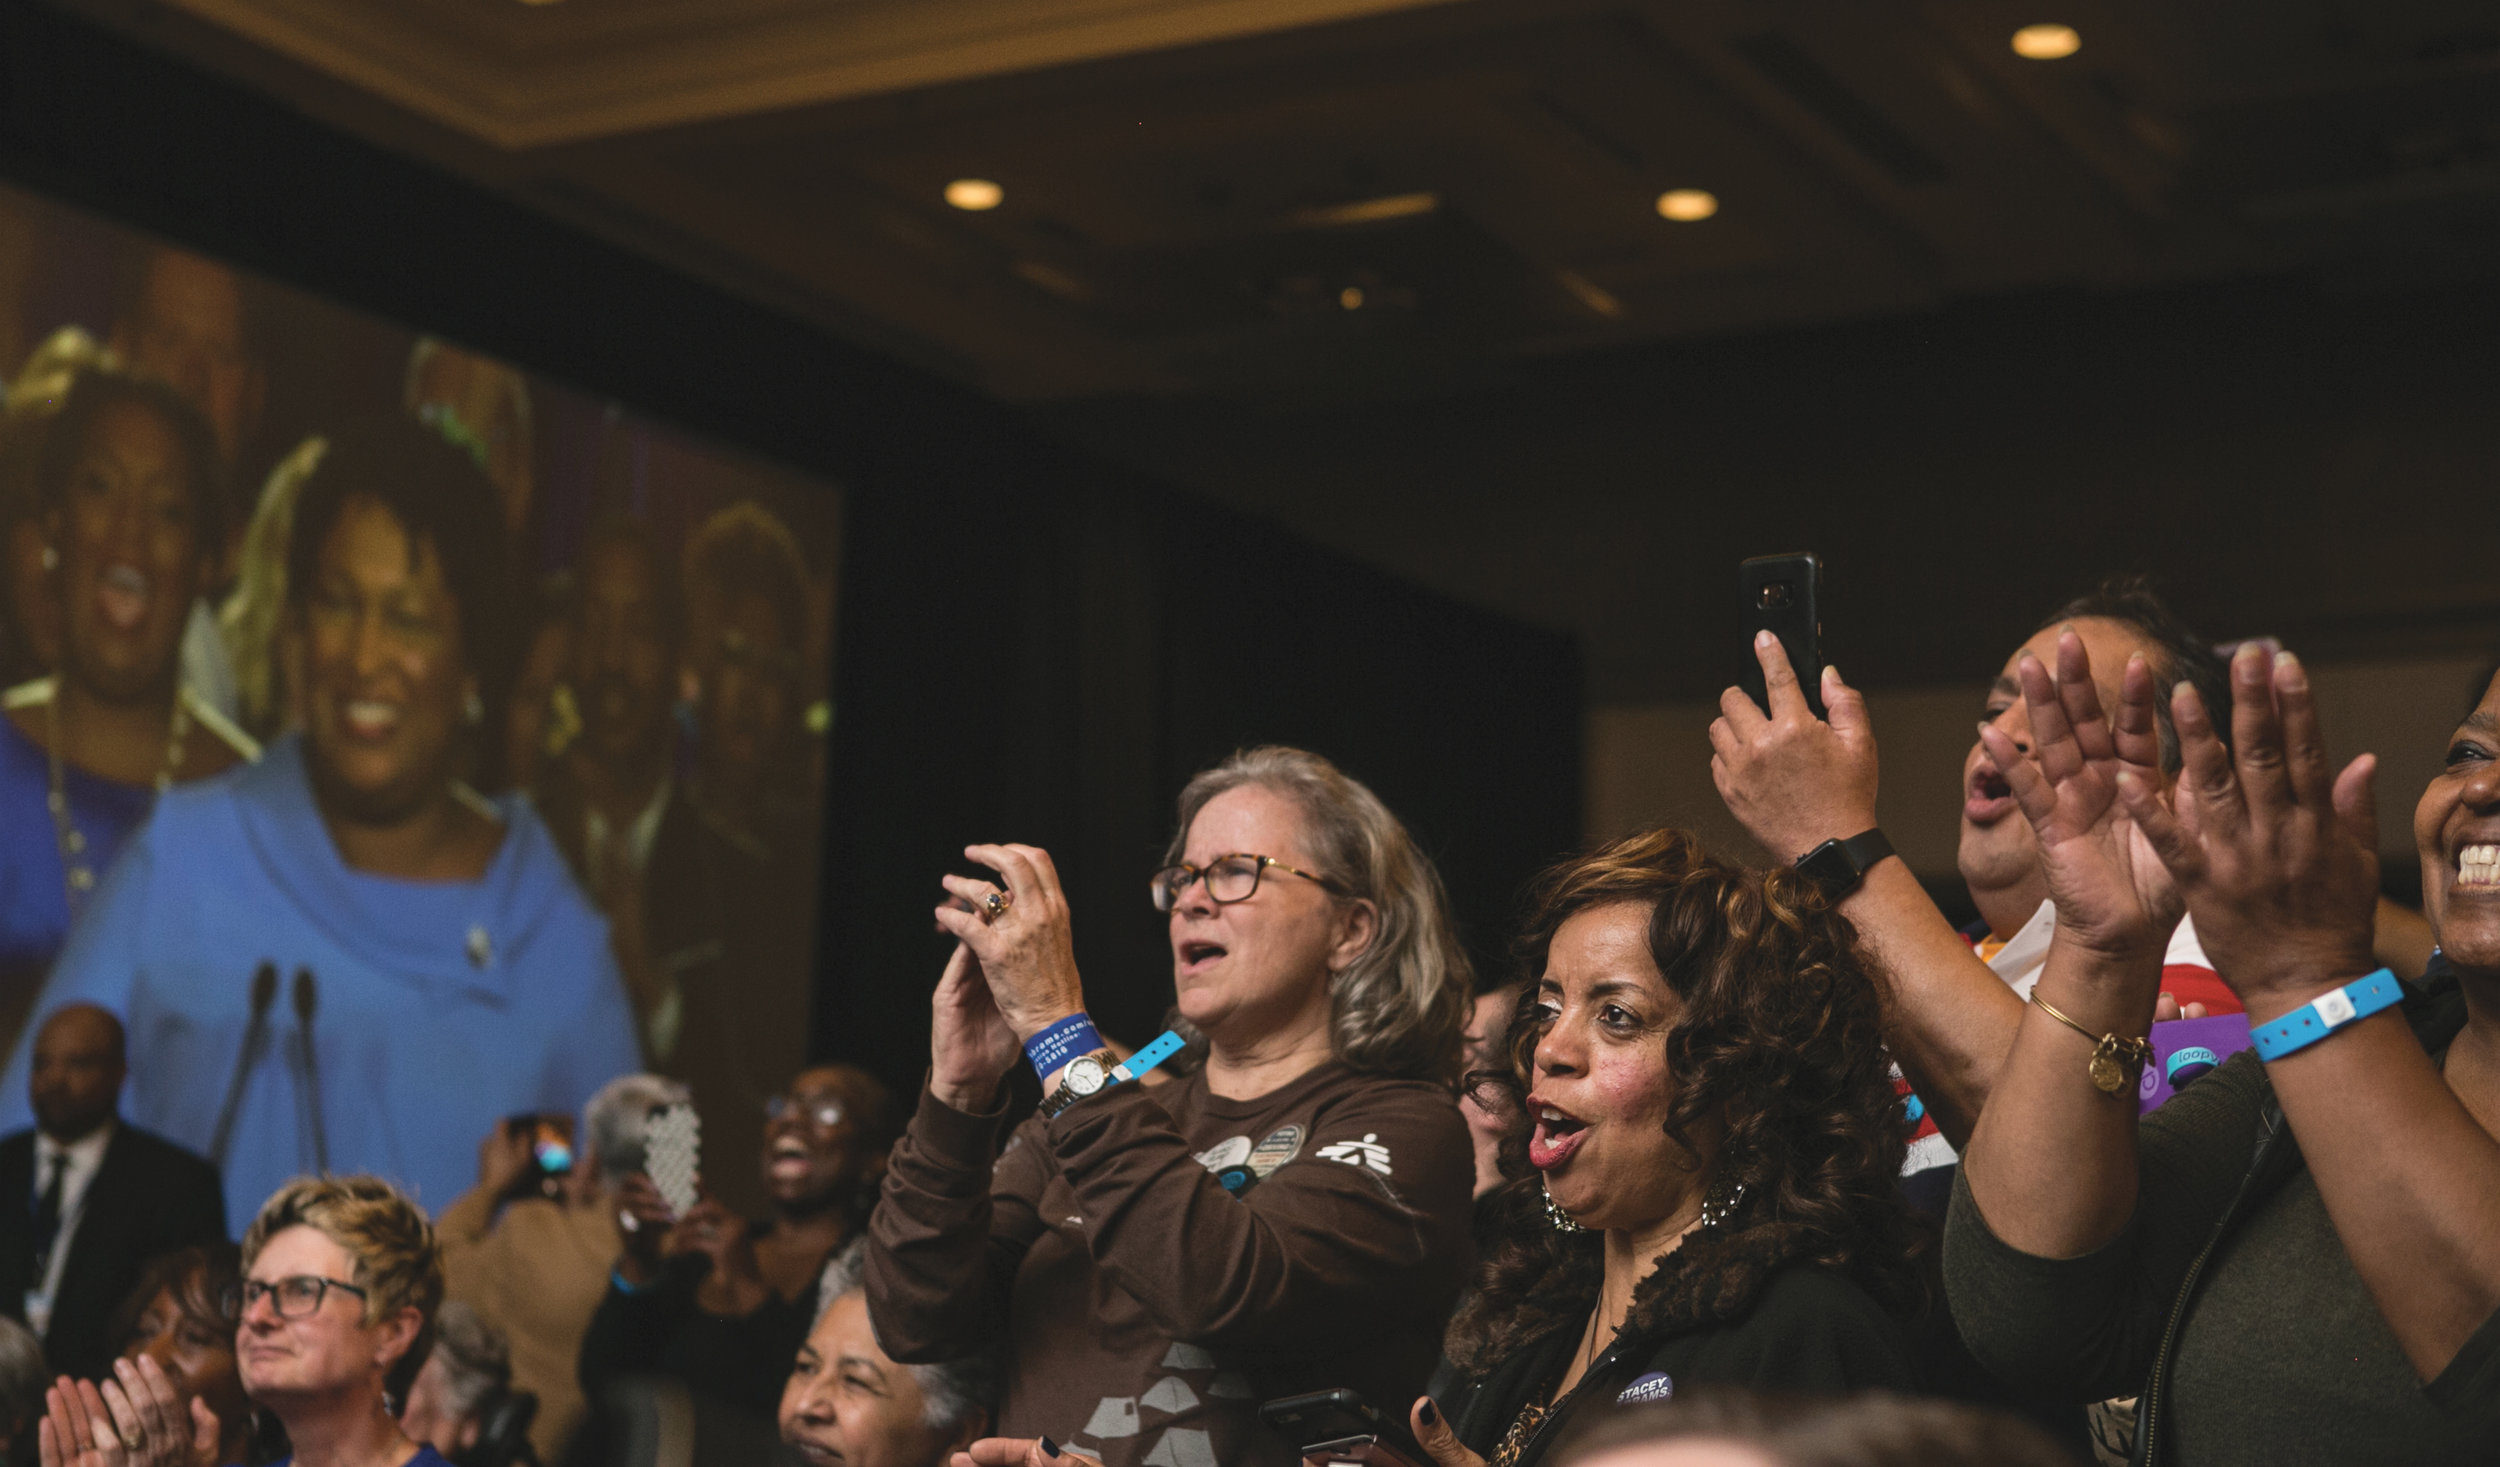 Supporters cheer for Democratic Gubernatorial candidate Stacey Abrams as se addresses the crowd at an election watch party on November 6, 2018 in Atlanta, Georgia. Abrams and her opponent, Republican Brian Kemp, are in a tight race that is too close to call. A runoff for Georgia's governor is likely. (Photo: Jessica McGowan/Getty Images)